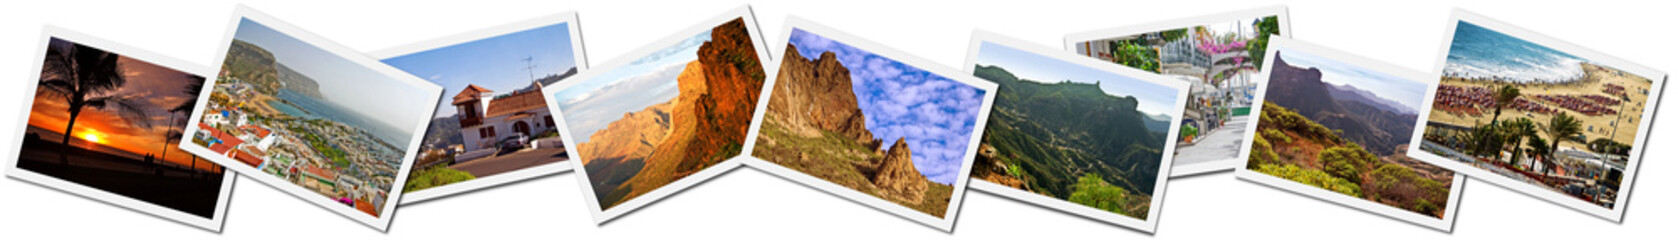 Collage of Canary Islands photos